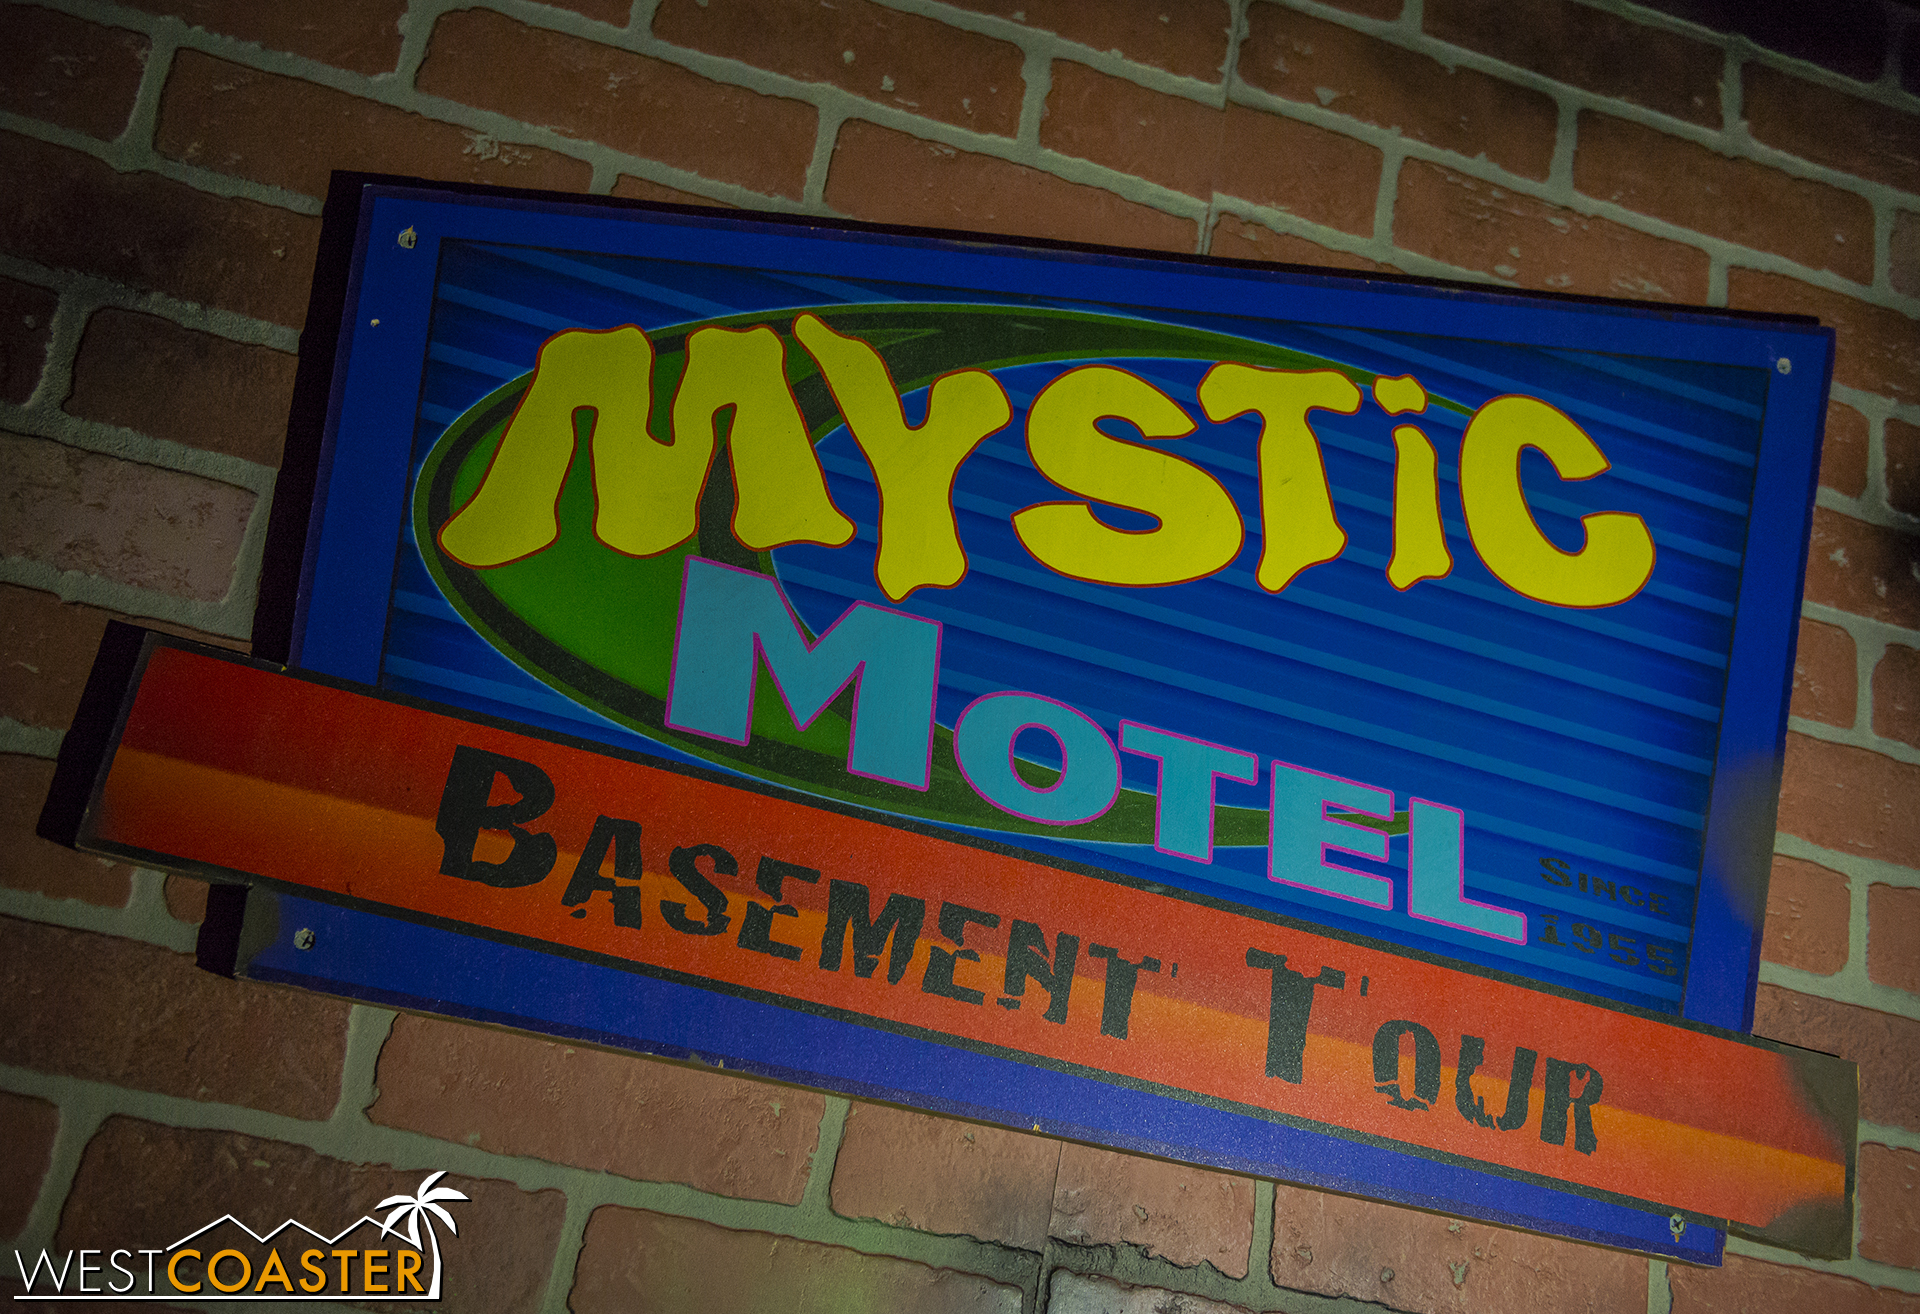 But this home haunted attraction is a lovely offering, and after hearing about it for years, I'm glad I was able to visit!